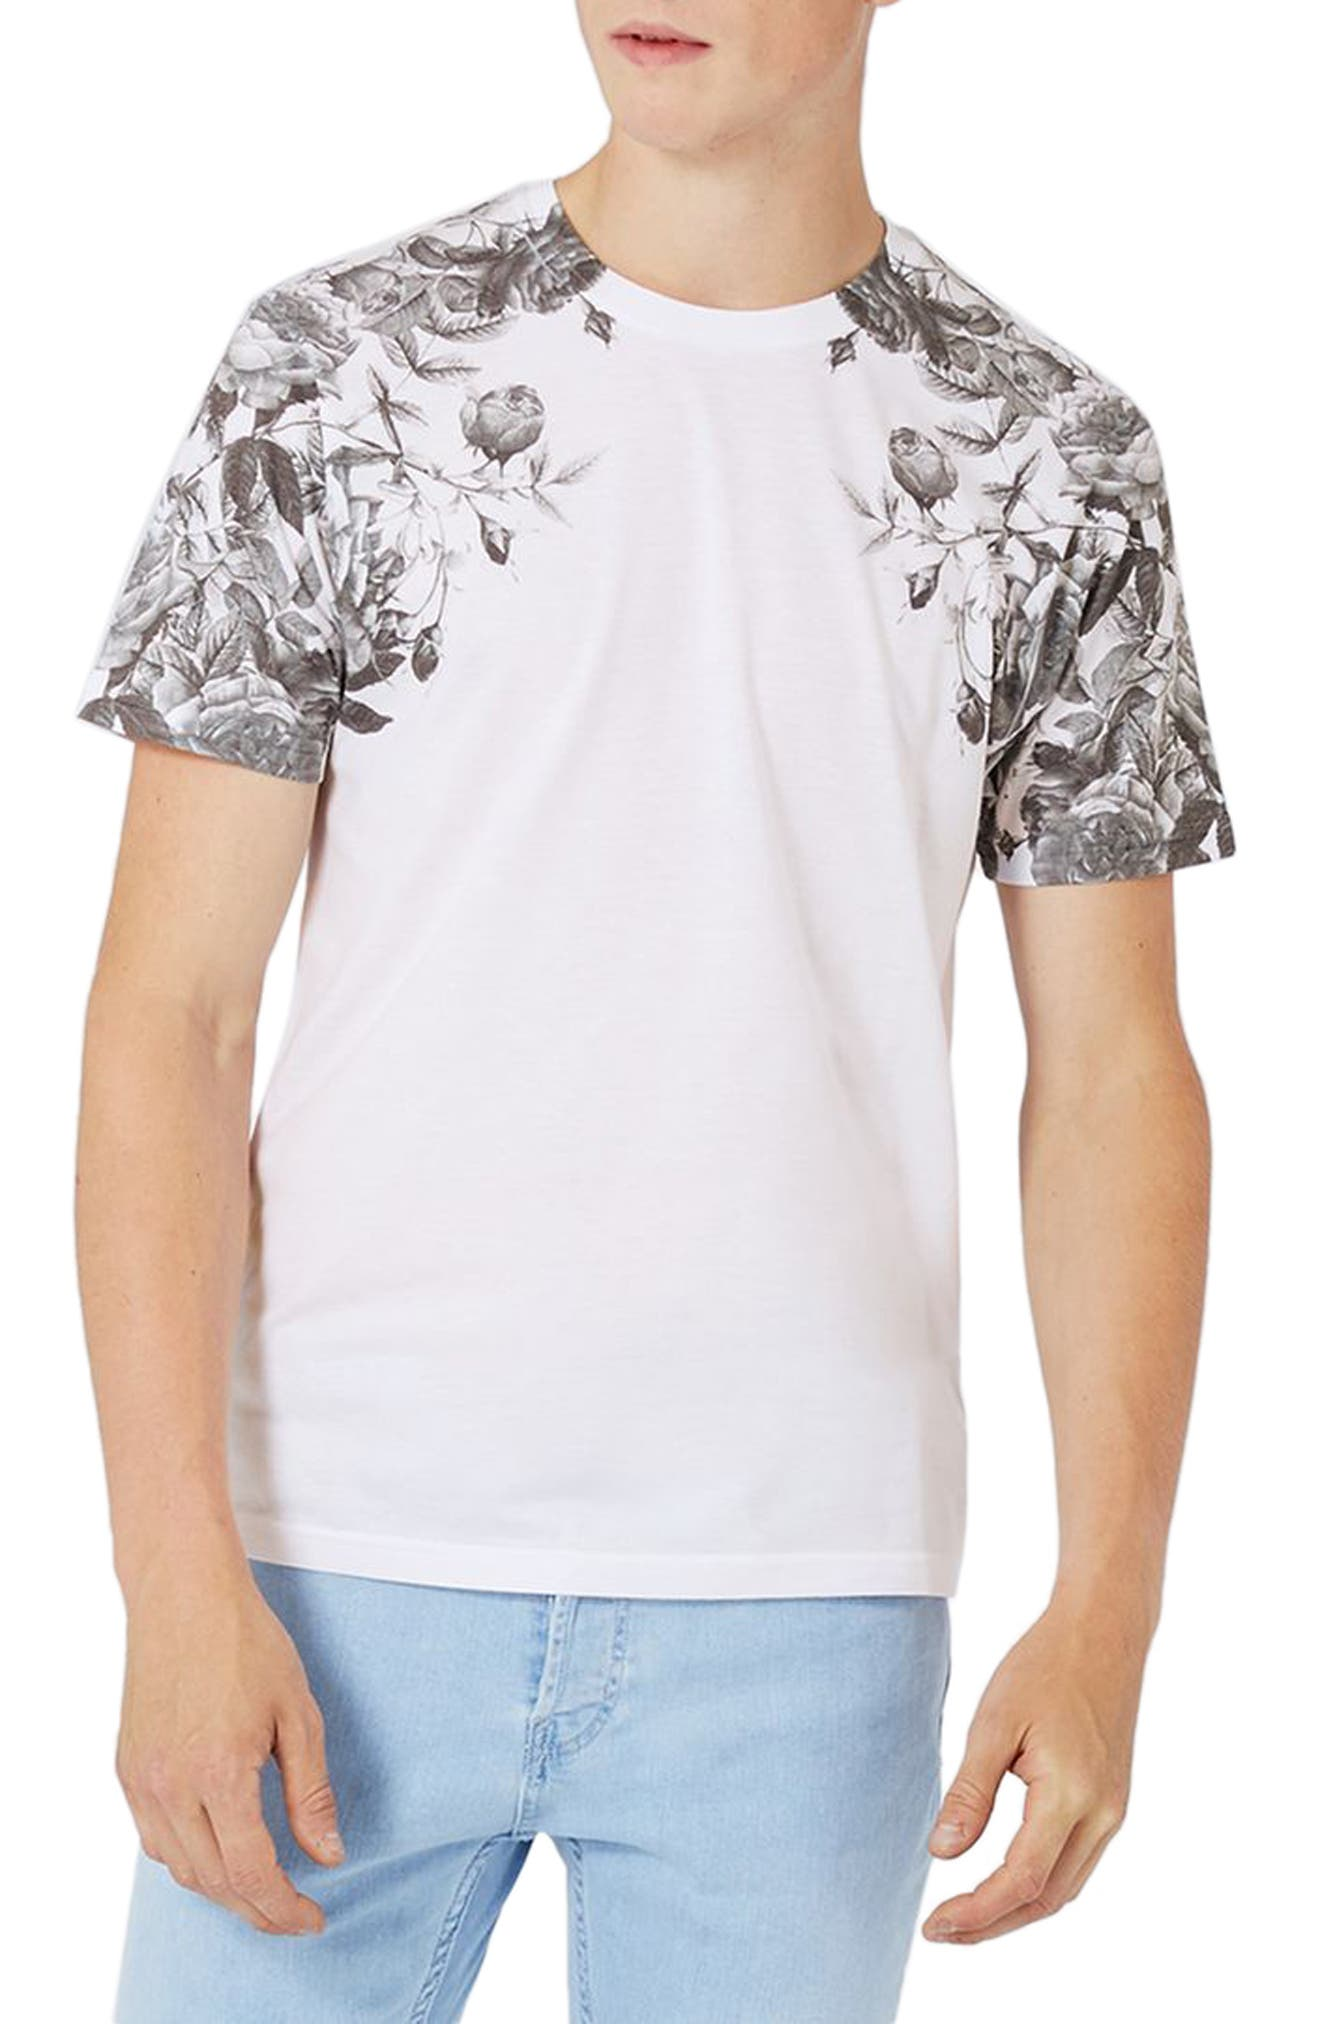 Topman Rose Print T-Shirt